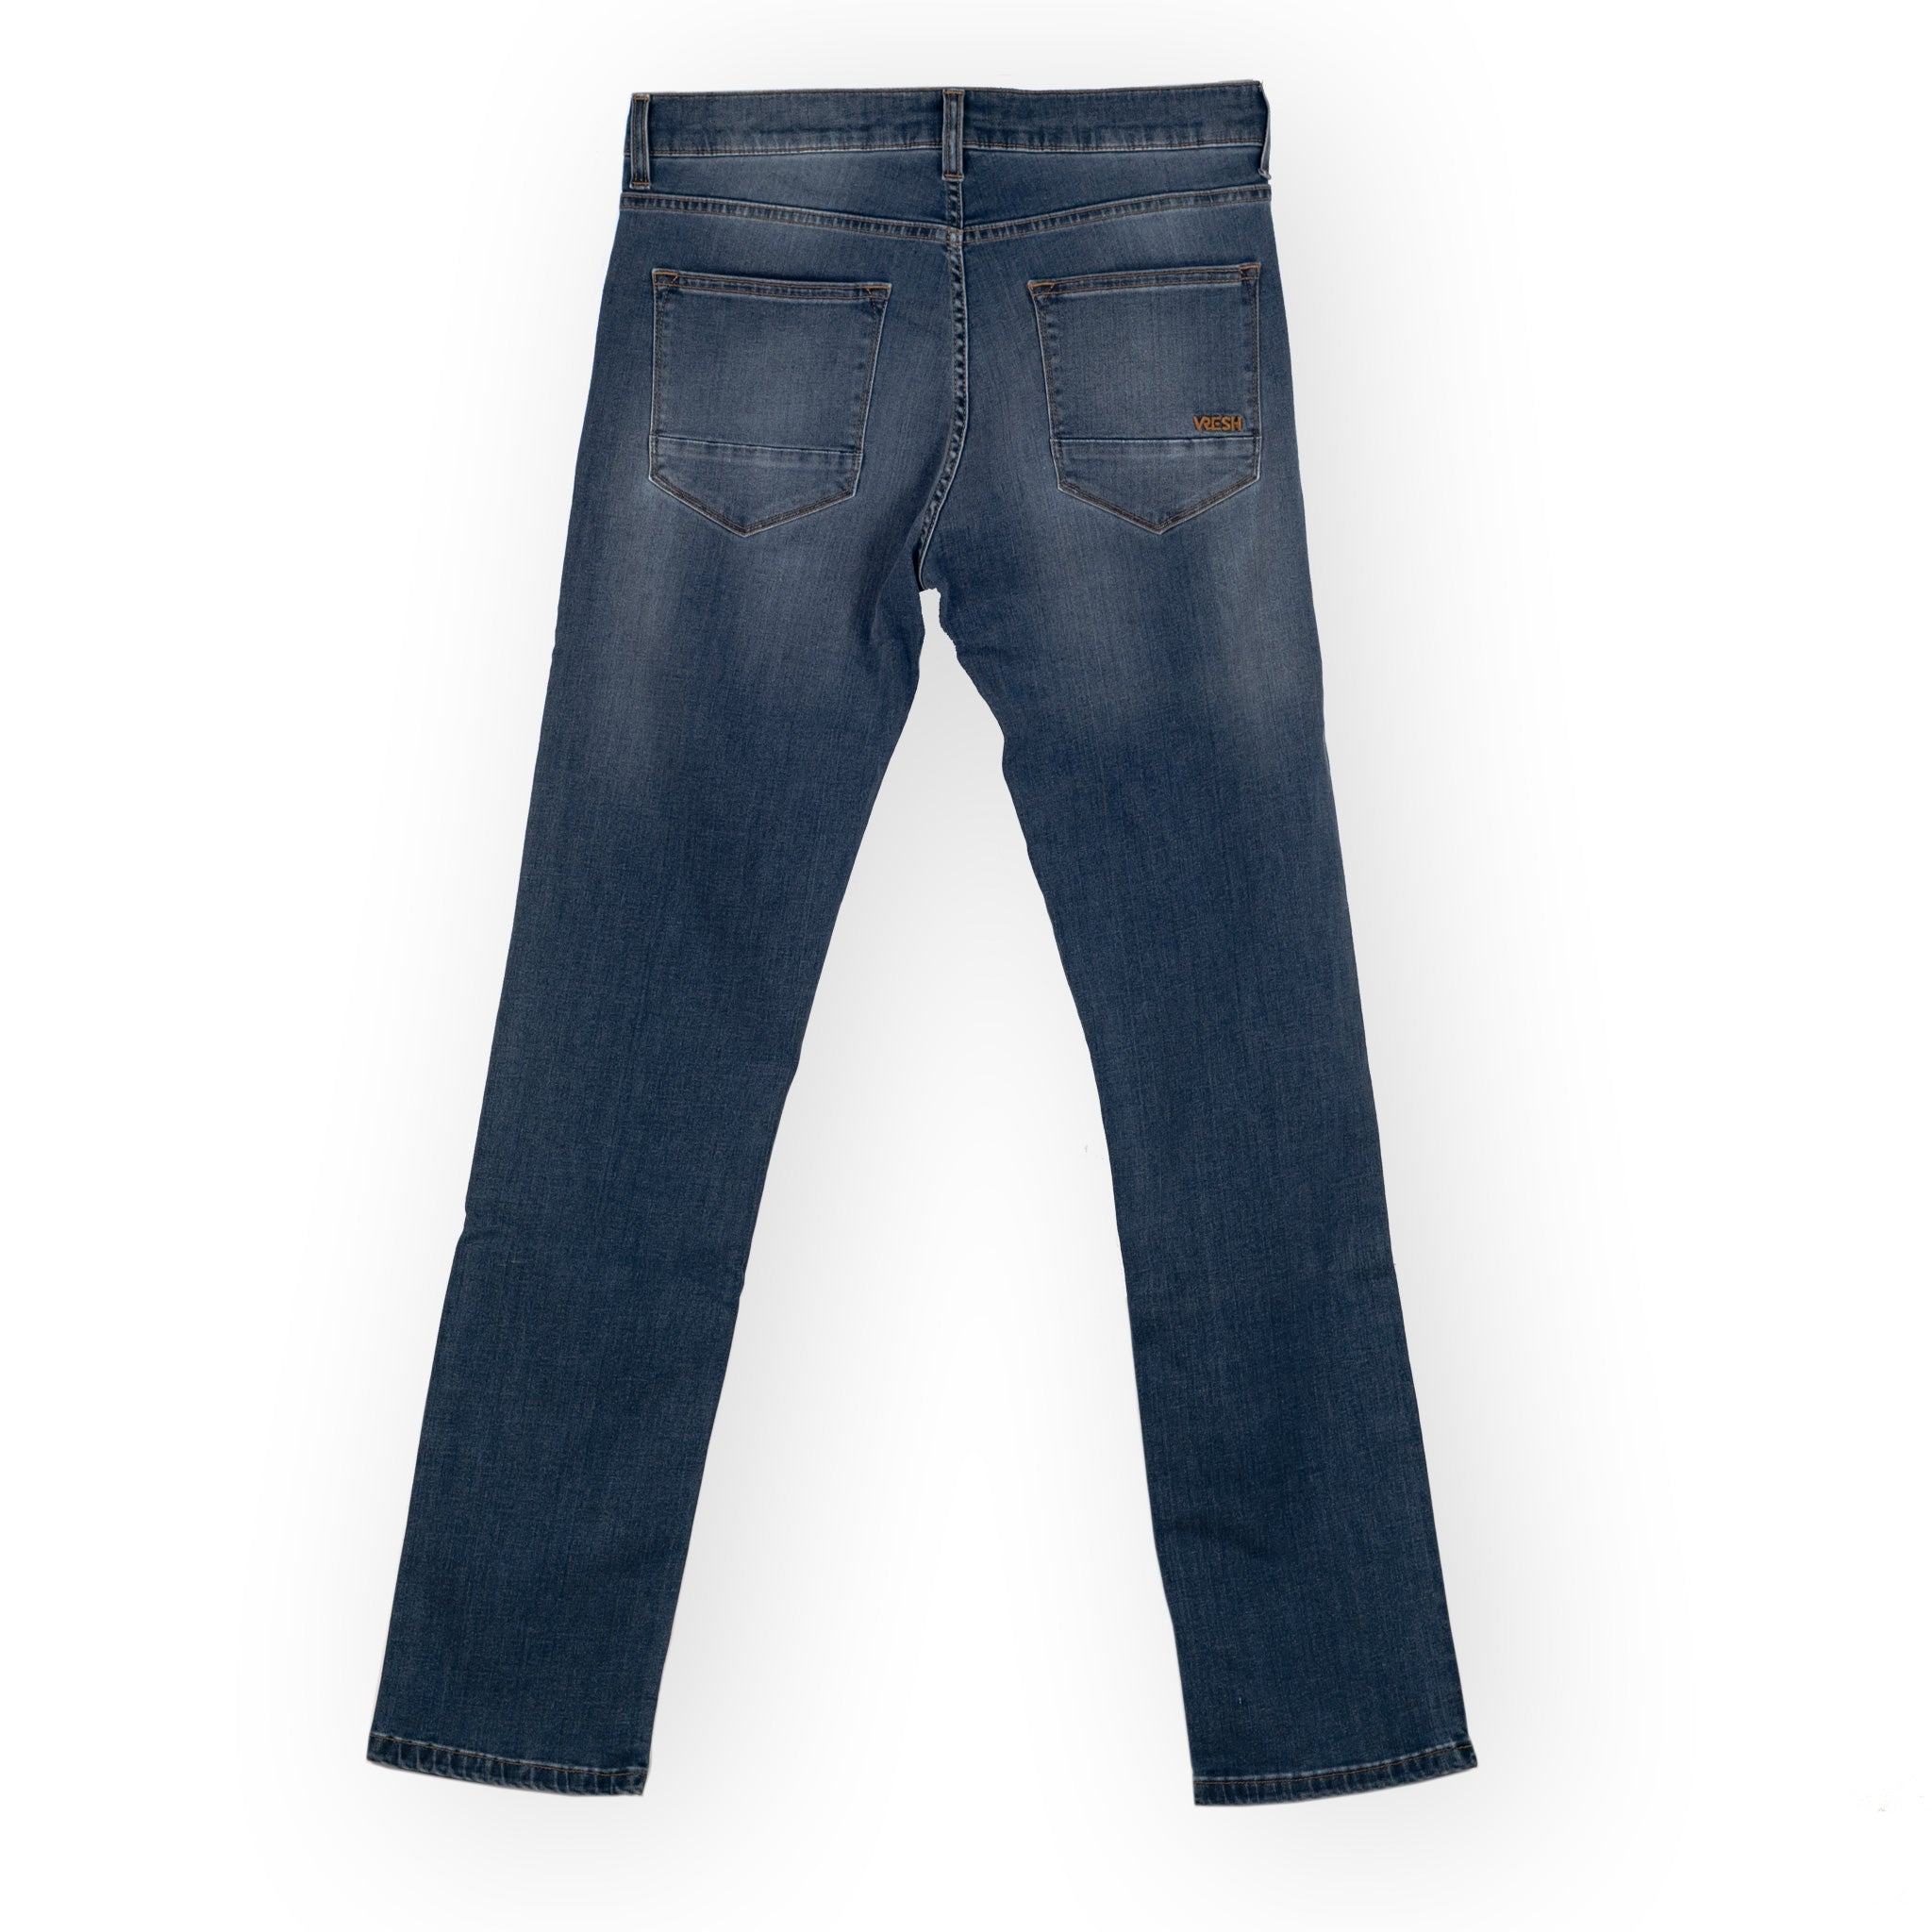 Vresh Jeans 2.0, Mid-washed, REGULAR FIT